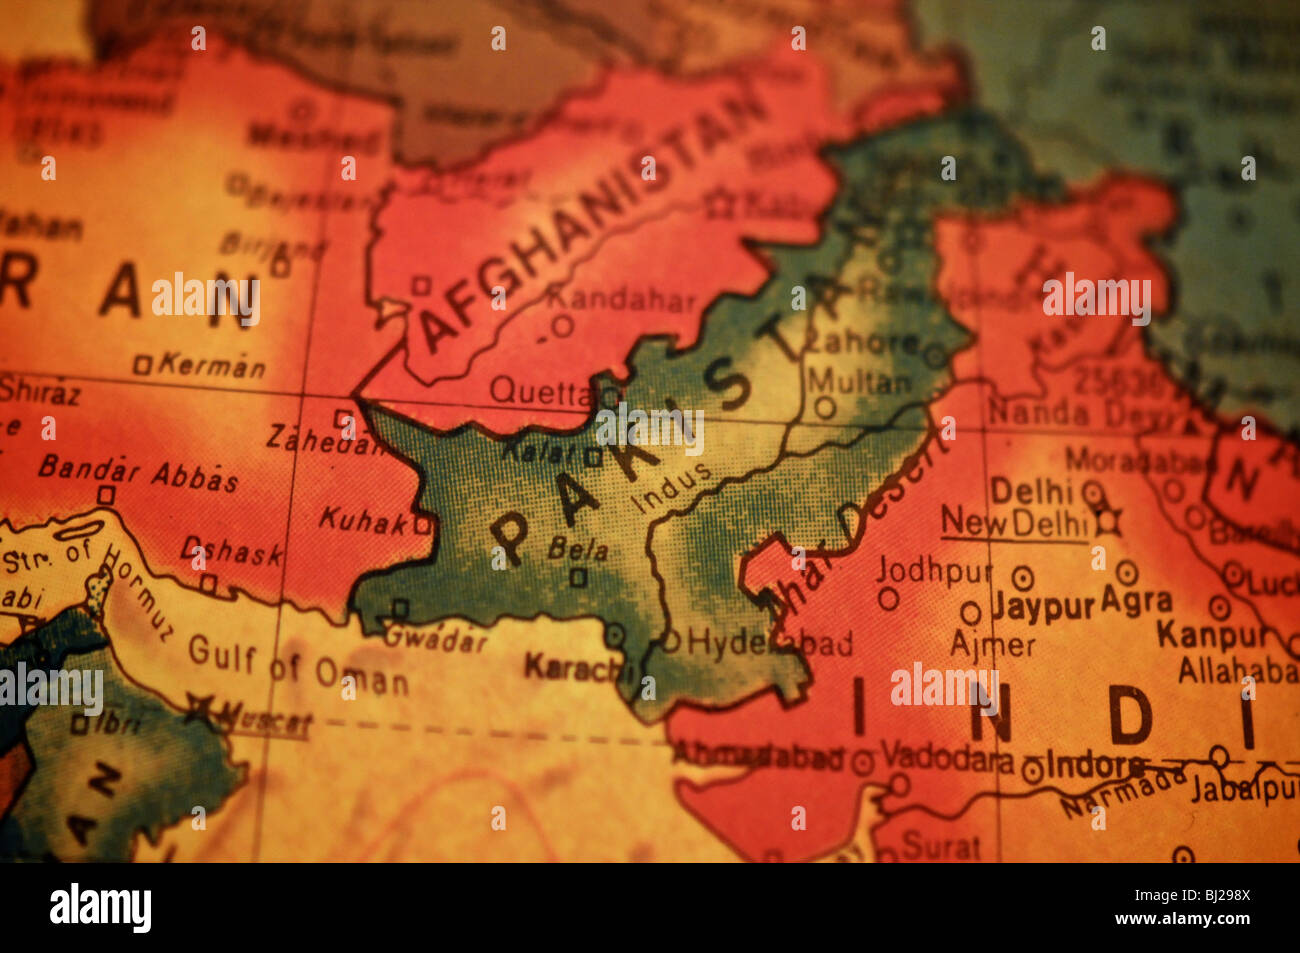 A detail photo of the world as depicted on an antique globe. Focusing on Pakistan. - Stock Image